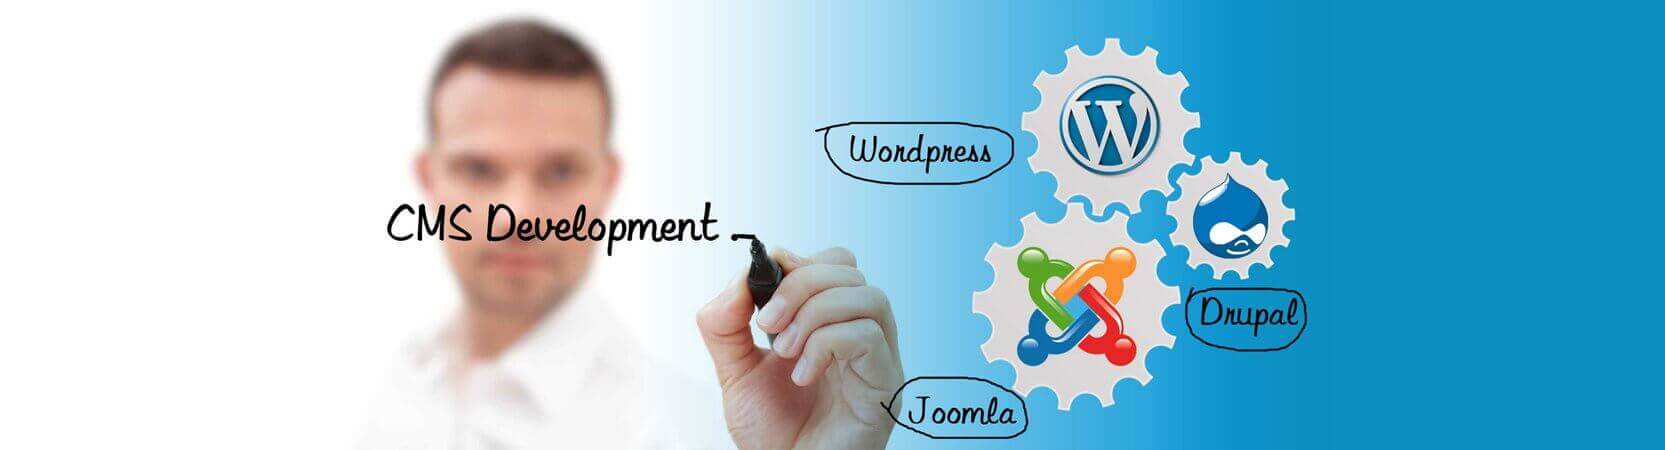 cms-wordpress-development